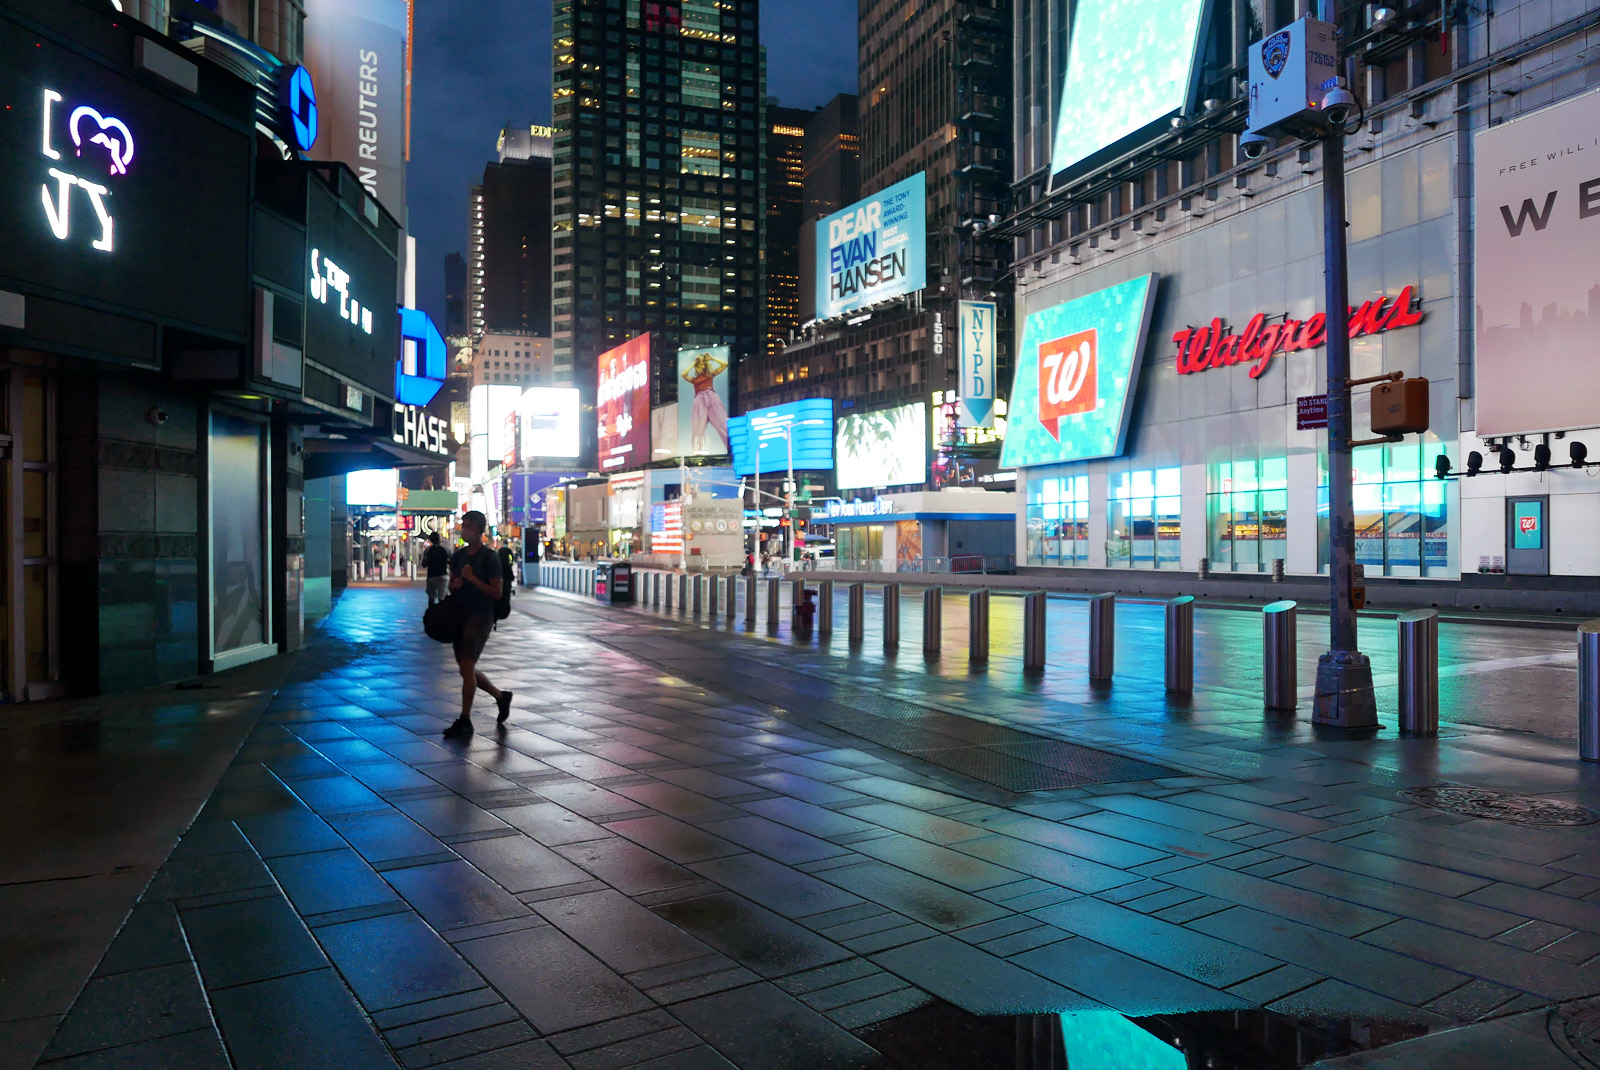 Friday evening in New York City - Times Square.